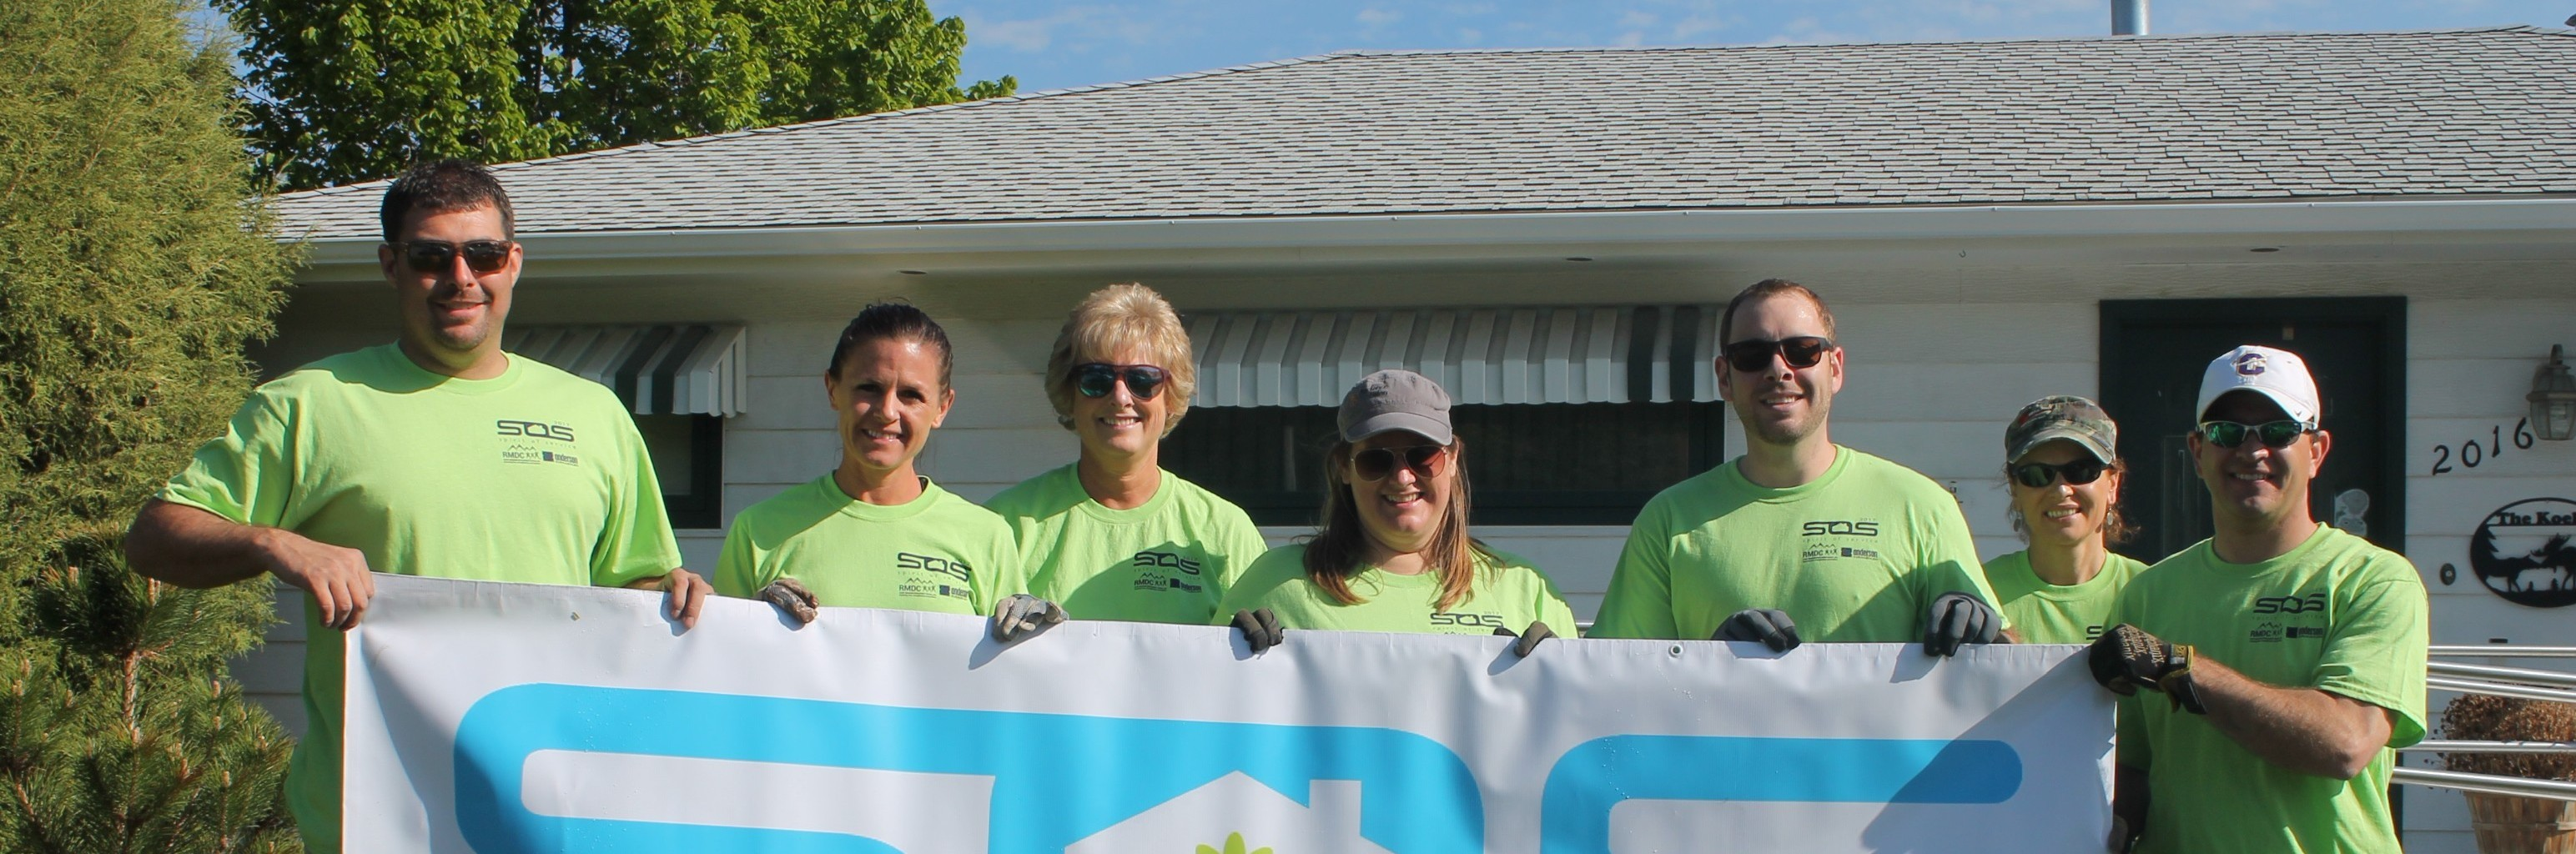 Pictured: Spirit of Service volunteers from First Interstate Bank with the SOS banner in front of a house.